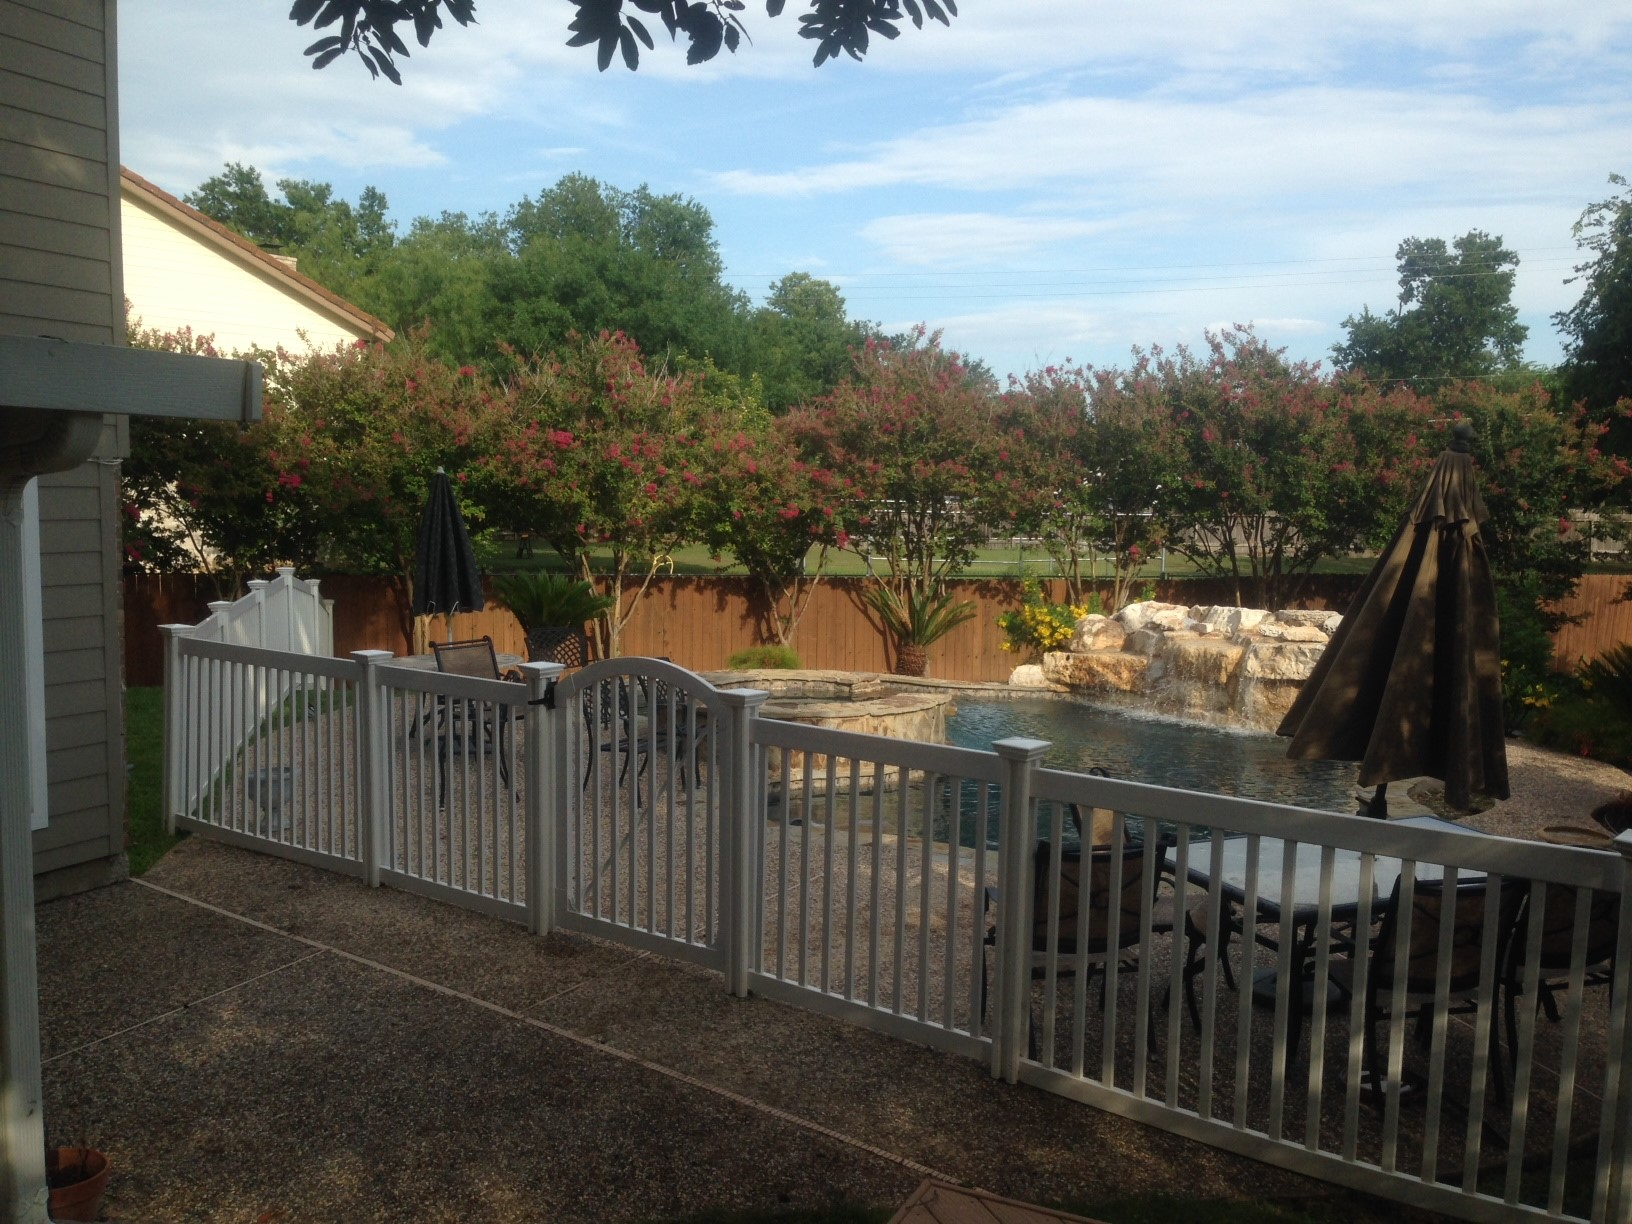 Brian keeps his pool safe and secure with the Plain Jane Vinyl Pool Fence